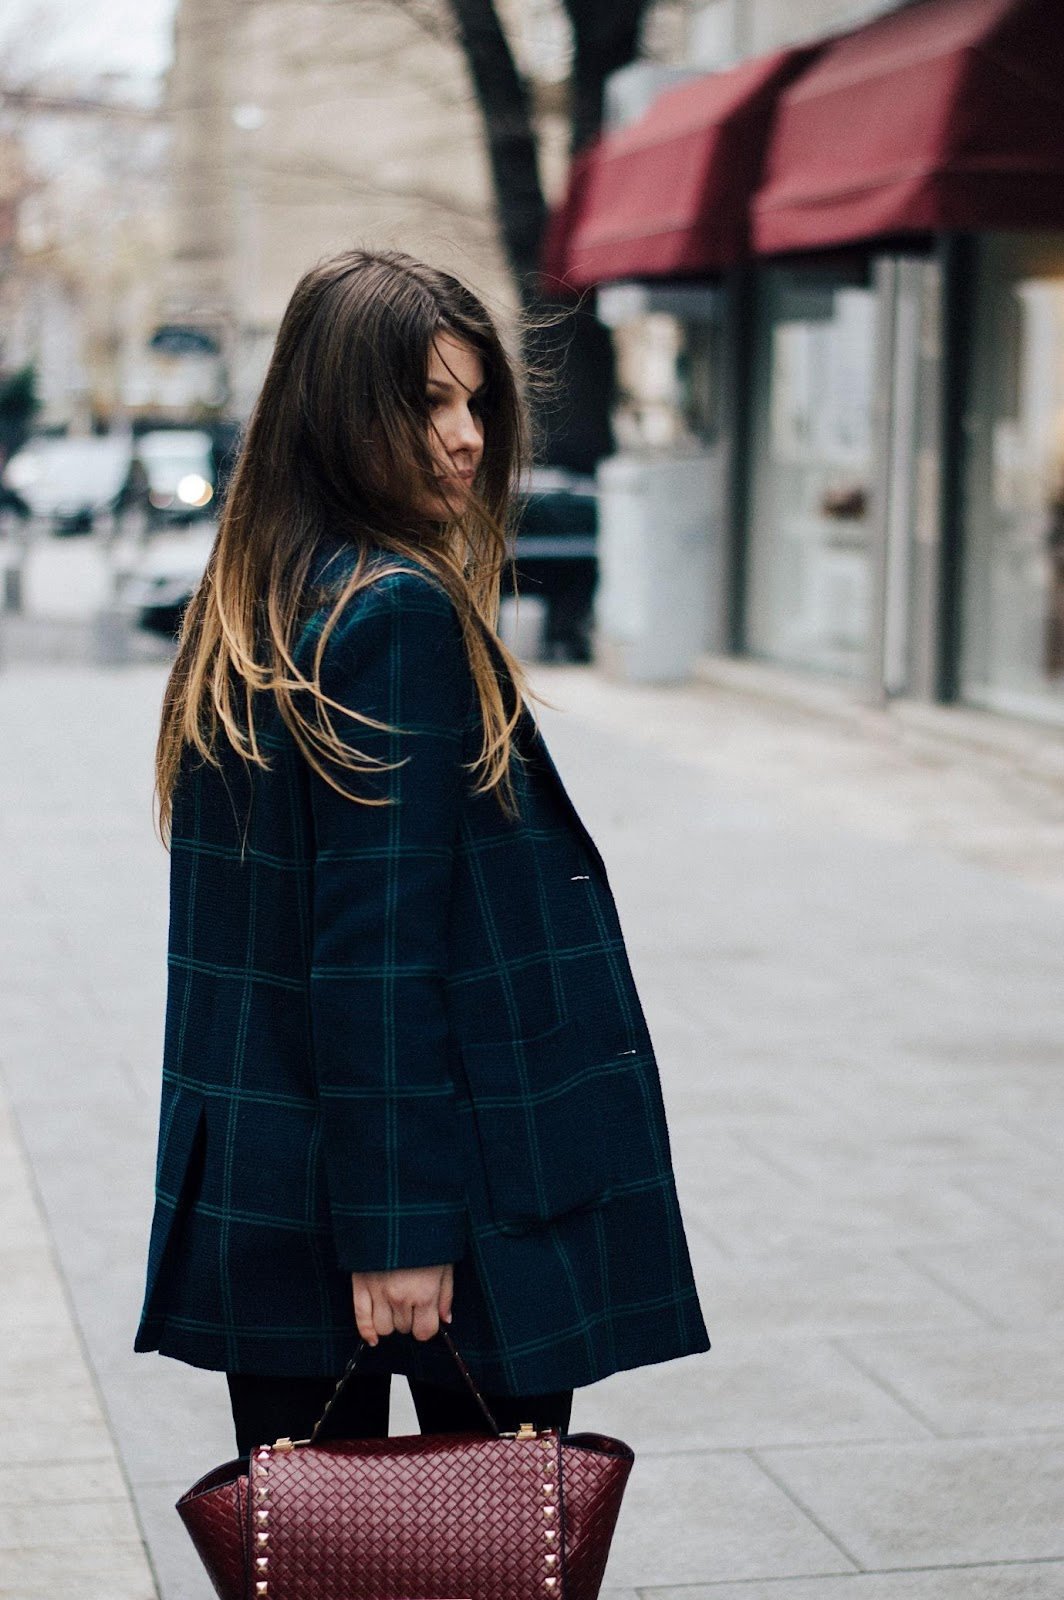 The Relevance of Fashion Education